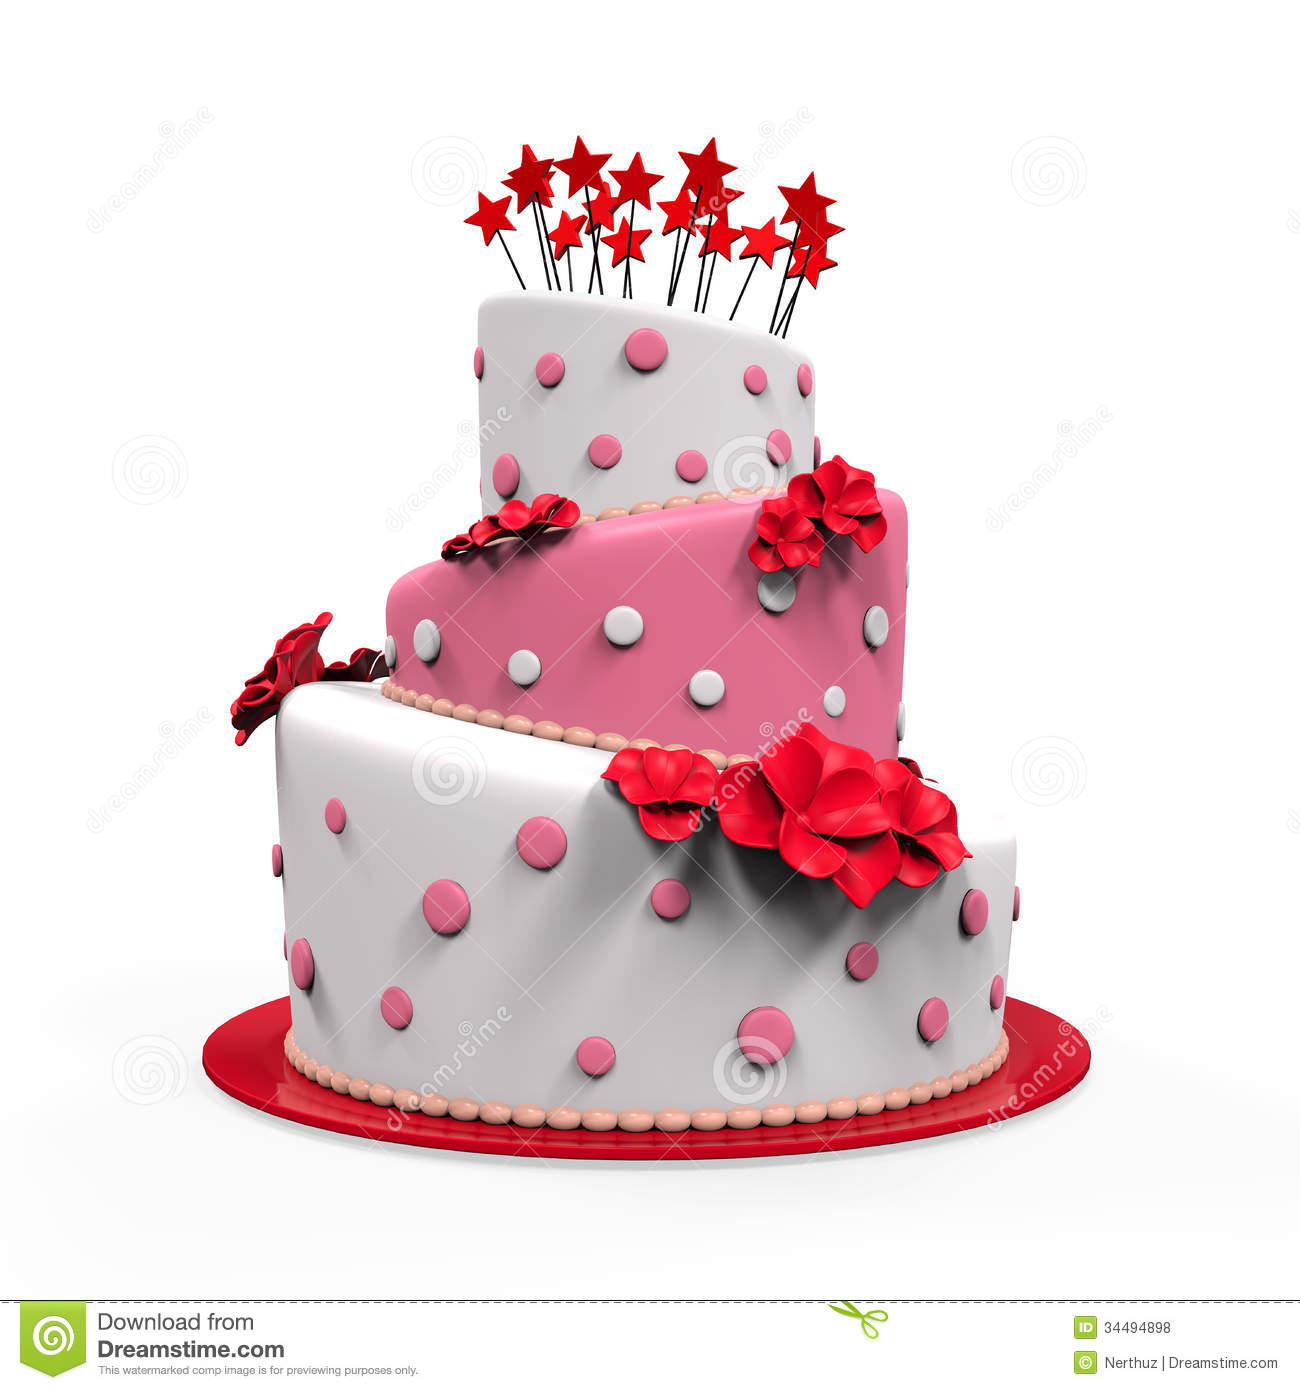 Big Cake Images Download : Big Cake Isolated Royalty Free Stock Photos - Image: 34494898